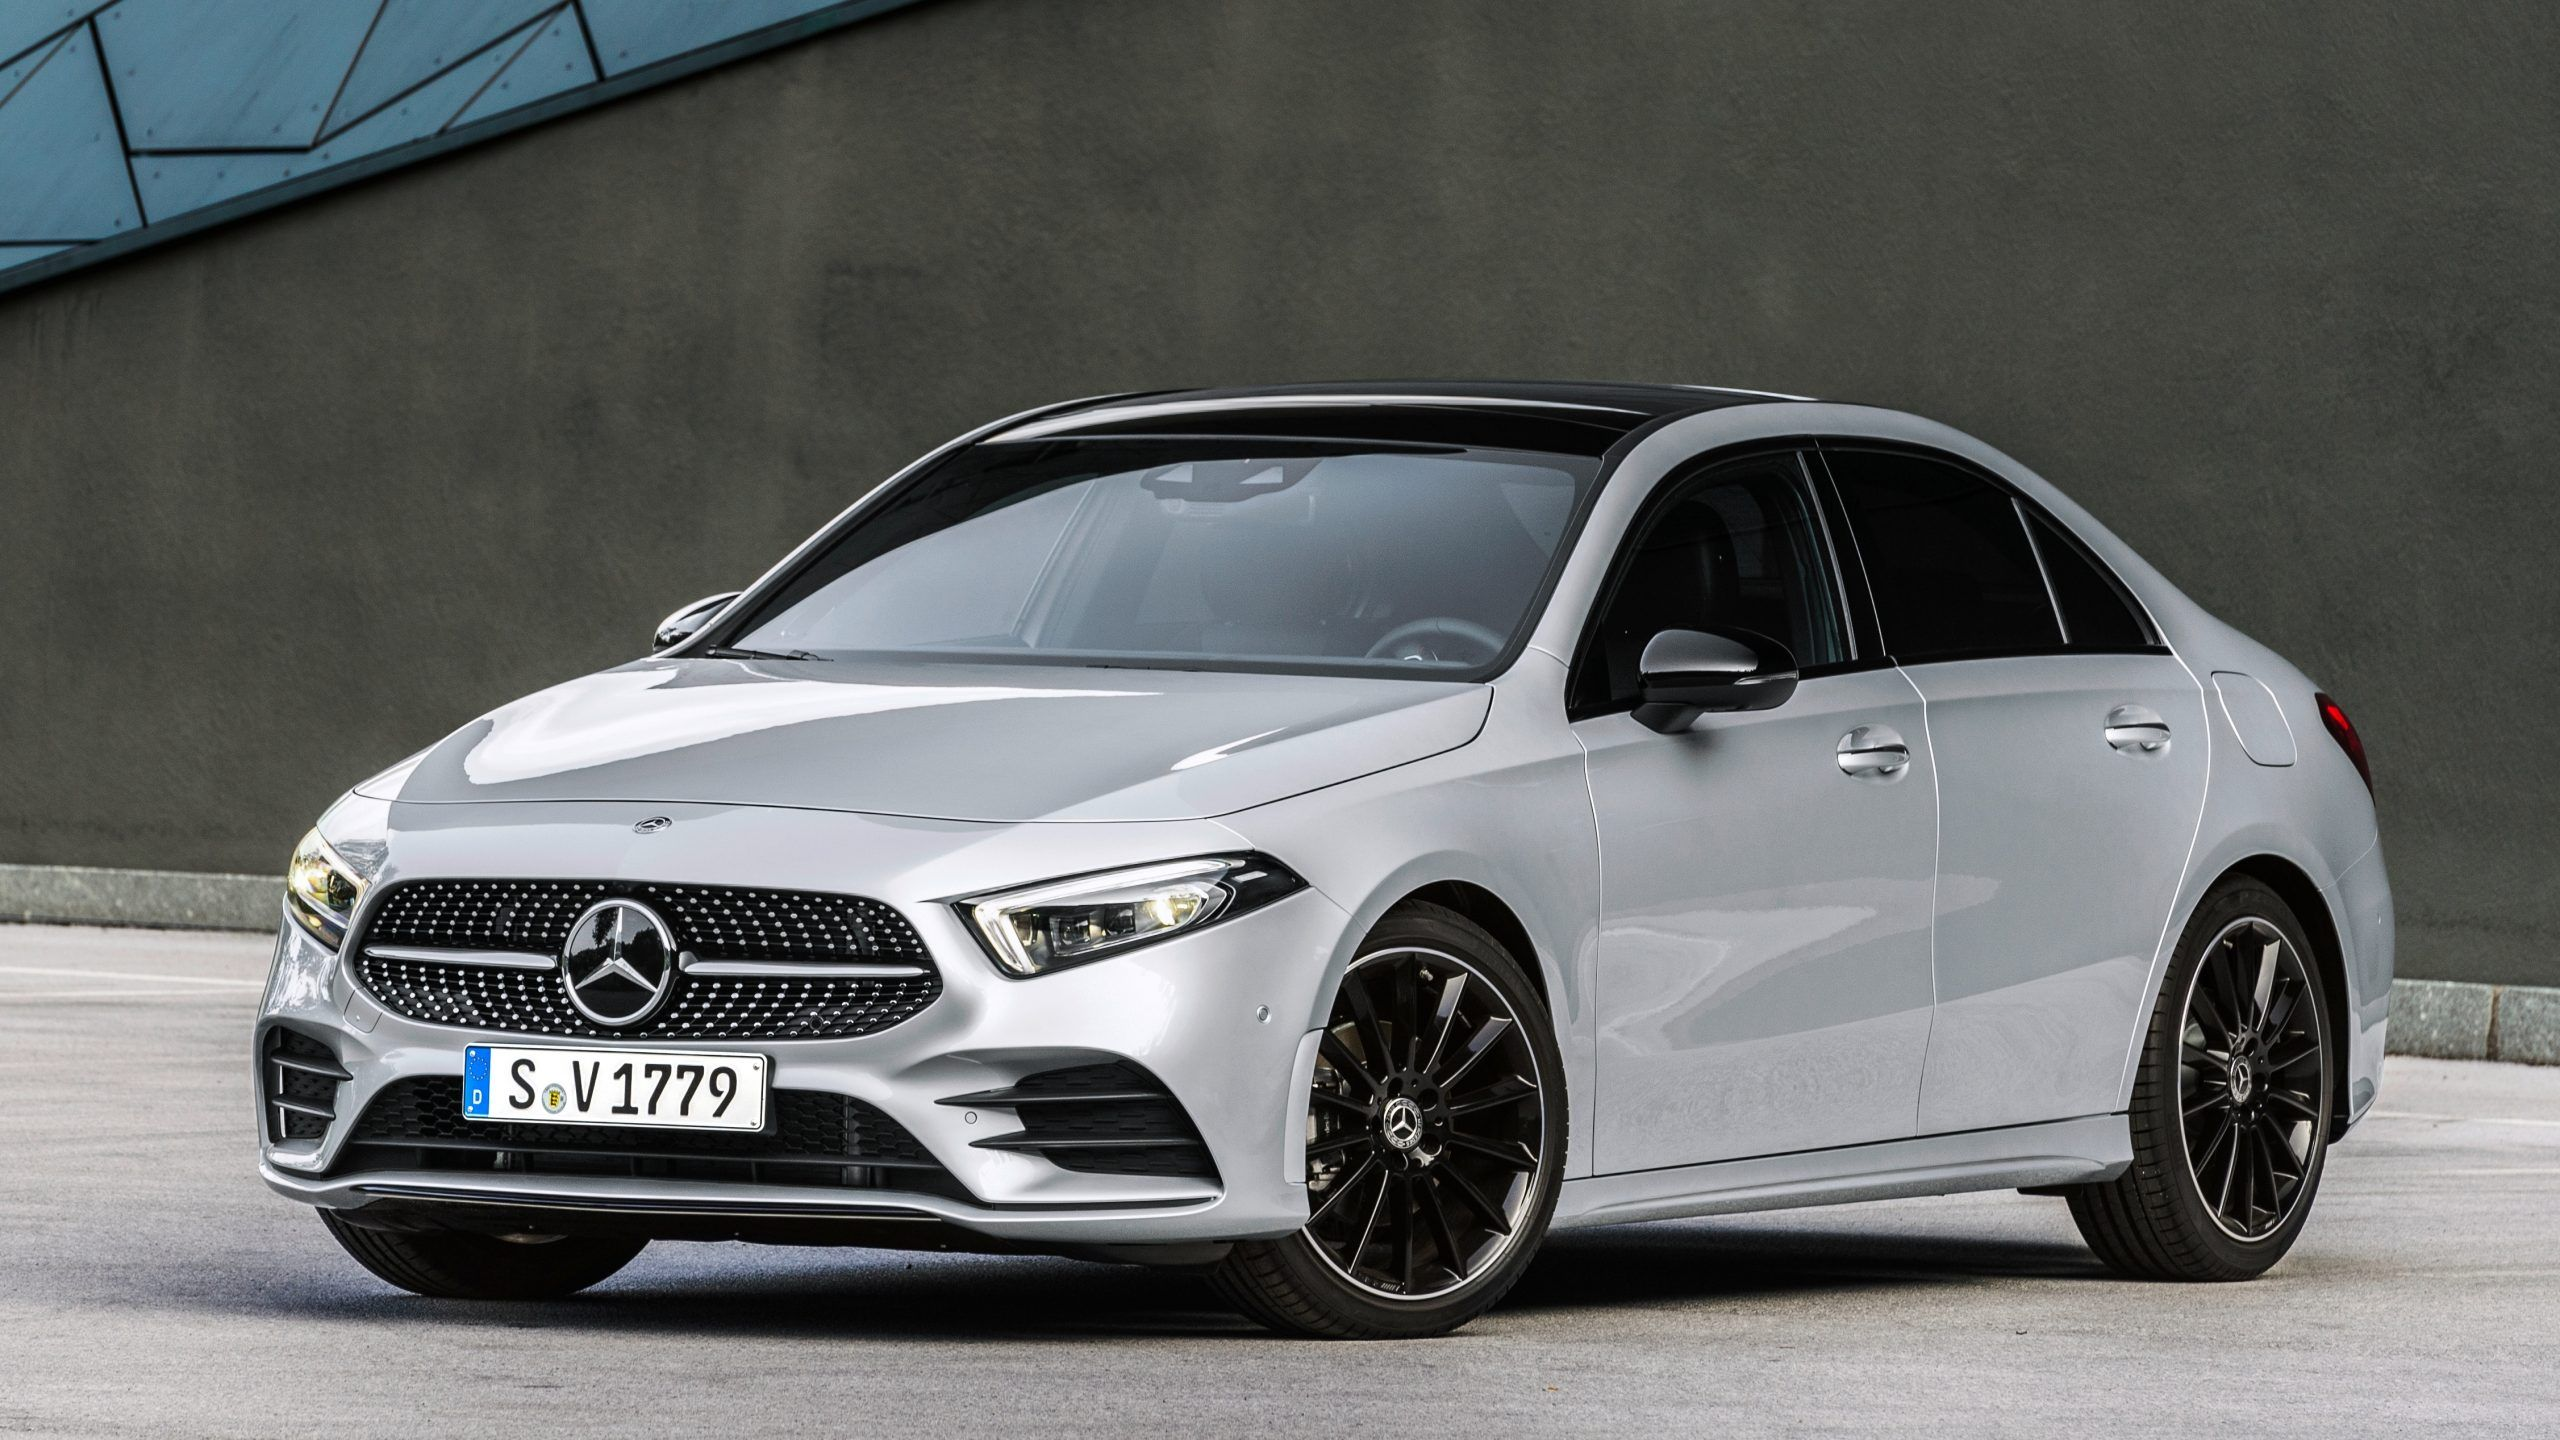 Mercedes 2021 A250 Specs And Review In 2020 Mercedes A Class Benz A Class New Mercedes A Class